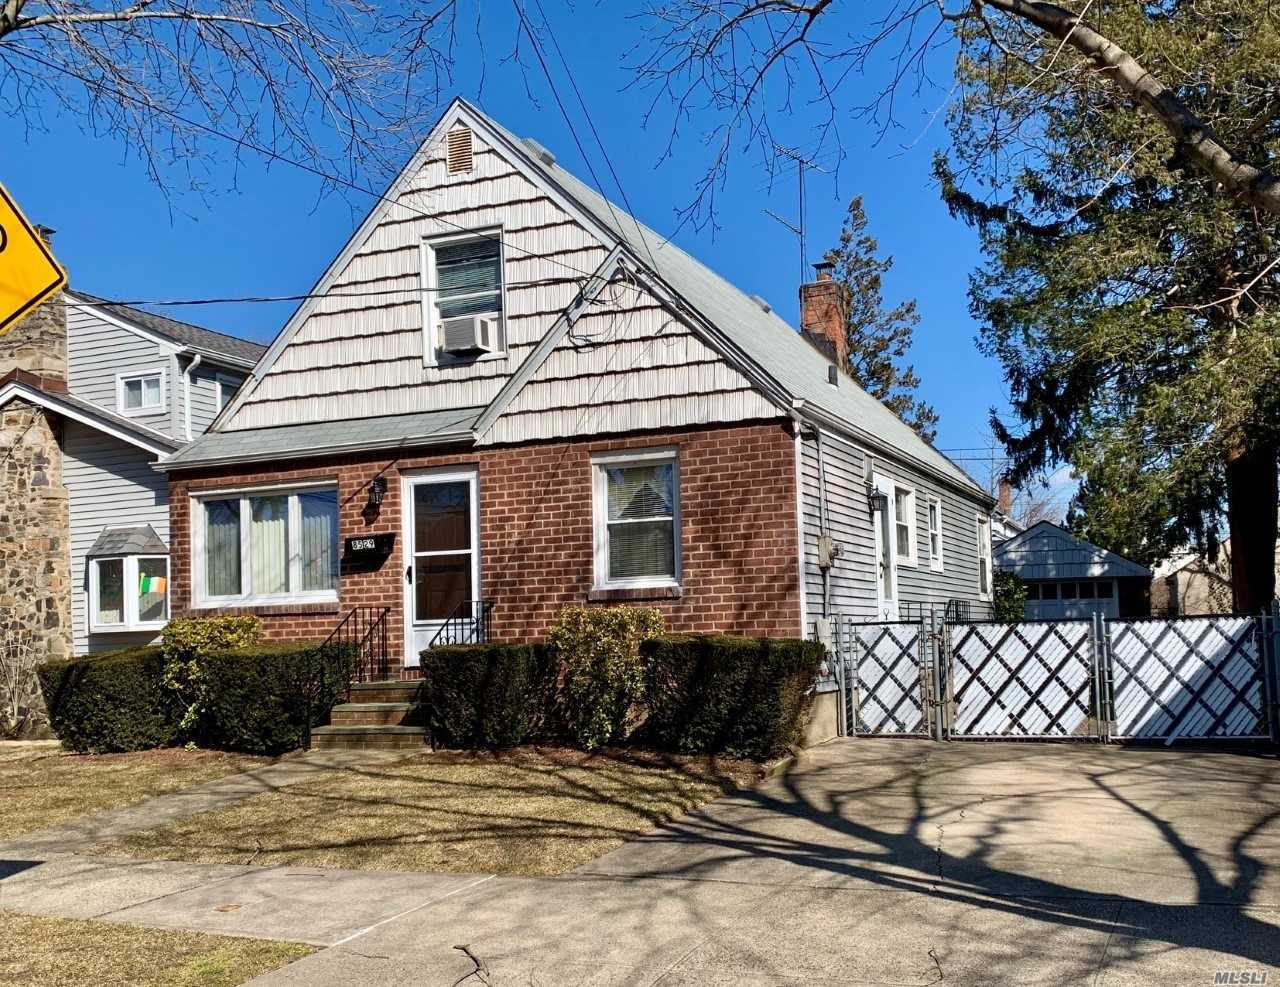 This Cape House Is Well Maintained And In Move In Condition. 4 Bedrooms, 1 Bath Room Hardwood Floors, Full Basement, Detached Garage. The Property Size Is 49 X 100 X 37 X 101 = 4, 300 Sq.Ft. Public Transportation Including The Lirr, Shopping And Recreation Are Within Walking Distance.